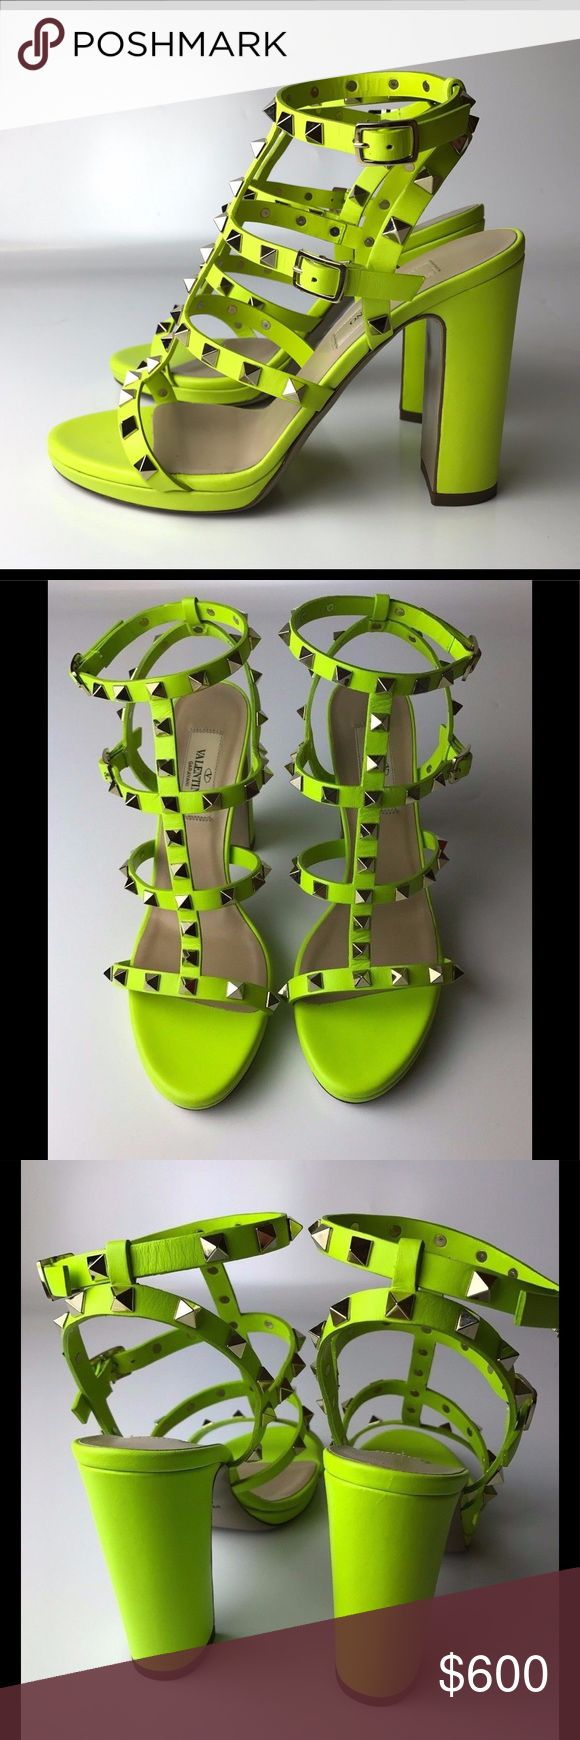 "Valentino Rockstud Neon Sandals / Pumps Euro 37 New, but have some flaws: ons scratch at the bag and patina / rust on hardware.  Come with box (no sticker on it), original dust bag and spare studs.    Insole is 9.6"" Heel is 4.33"" Platform is 0.6""  Please note, that European designer shoes typically run smaller then US designers. Christian Louboutin Shoes Sandals"